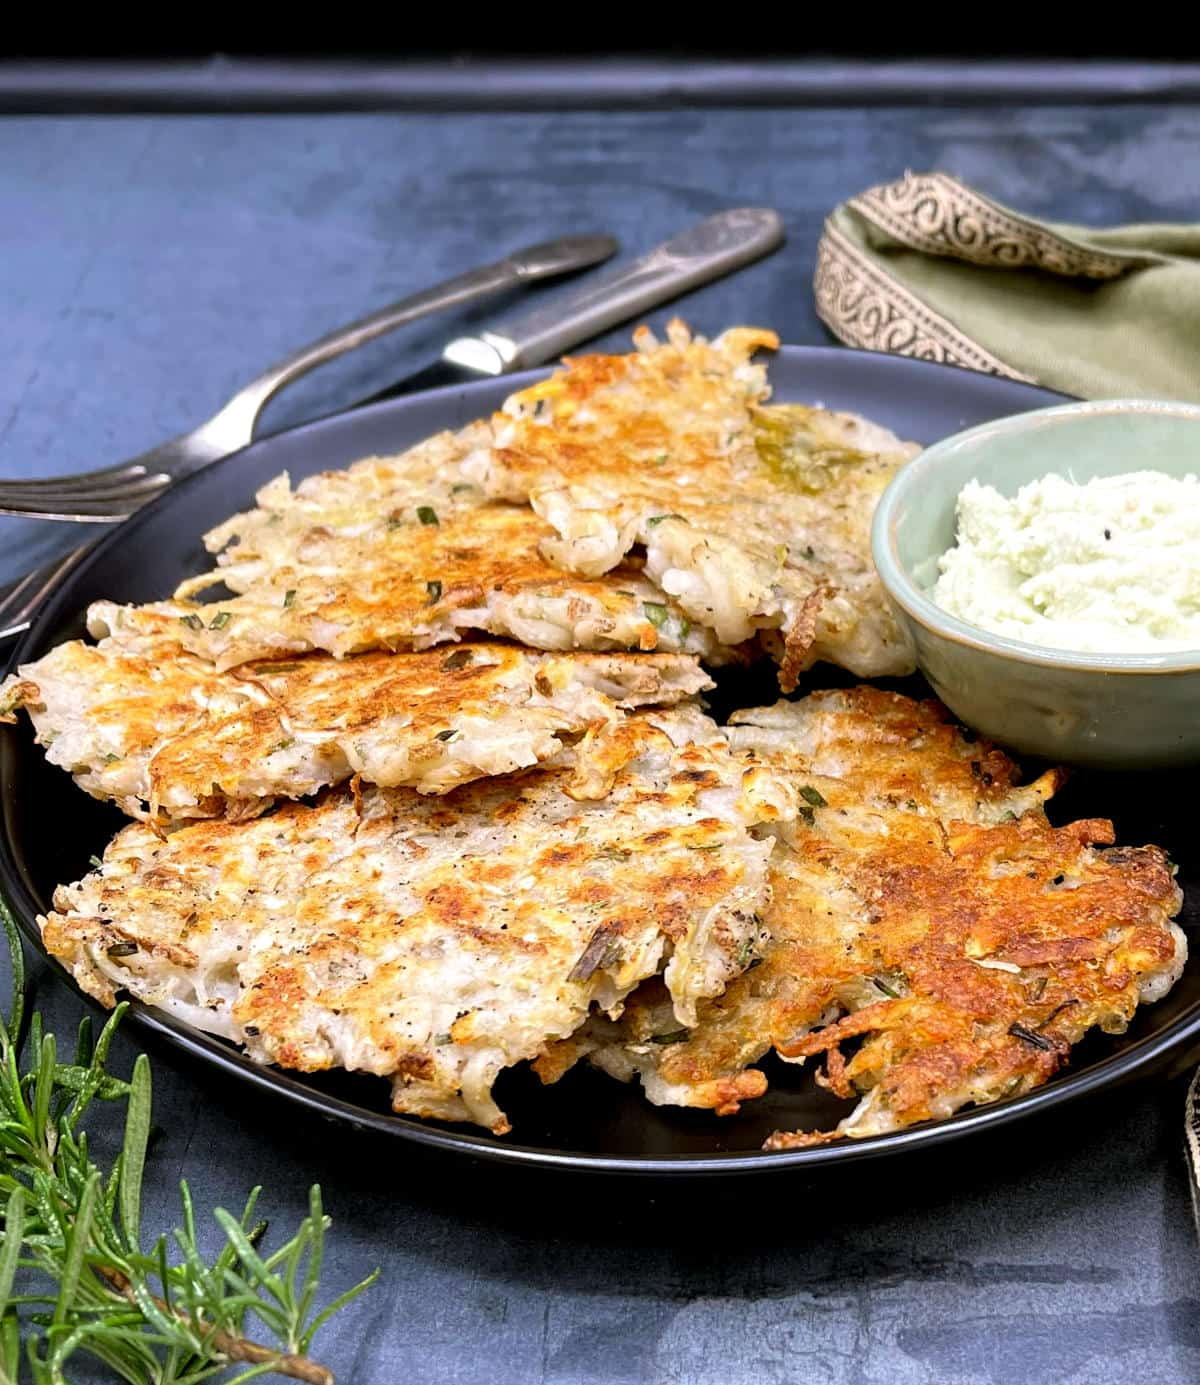 Potato Sauerkraut latkes in black plate with chutney, rosemary sprig and knife and fork.